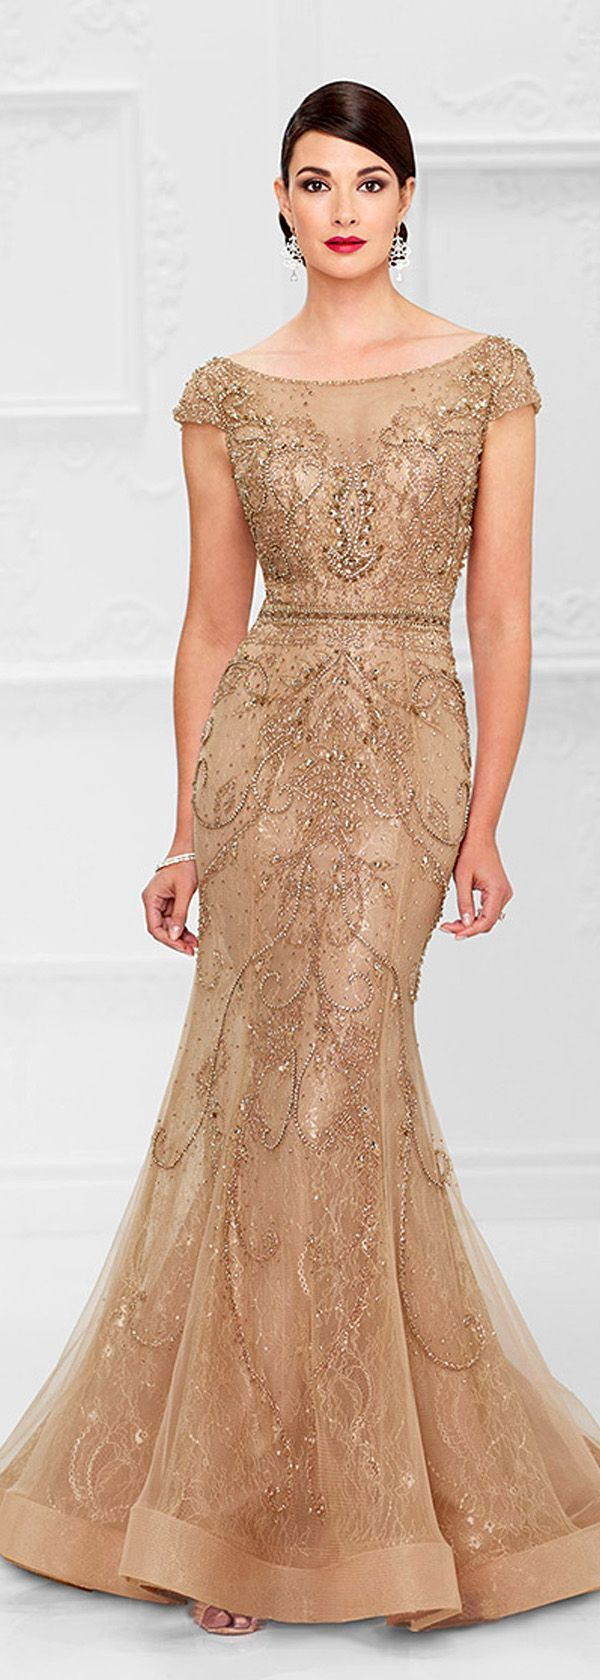 Image result for wedding dresses for second marriage over